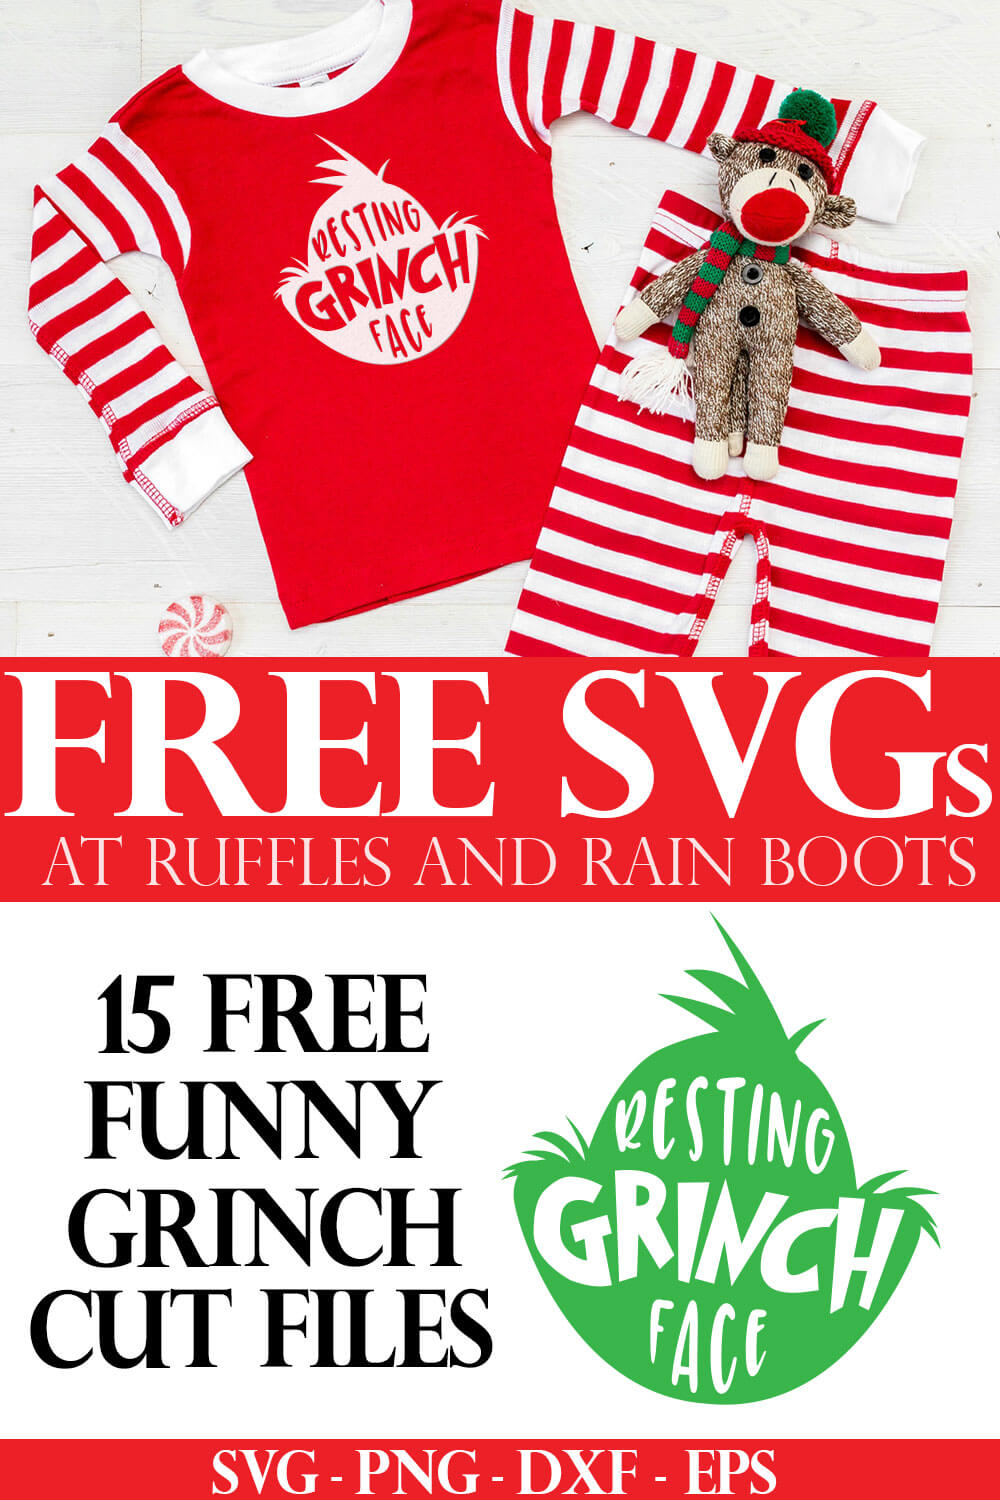 adorable Christmas pajamas made with free Grinch head SVG cut files for holiday crafts with text which reads free svg from ruffles and rain boots